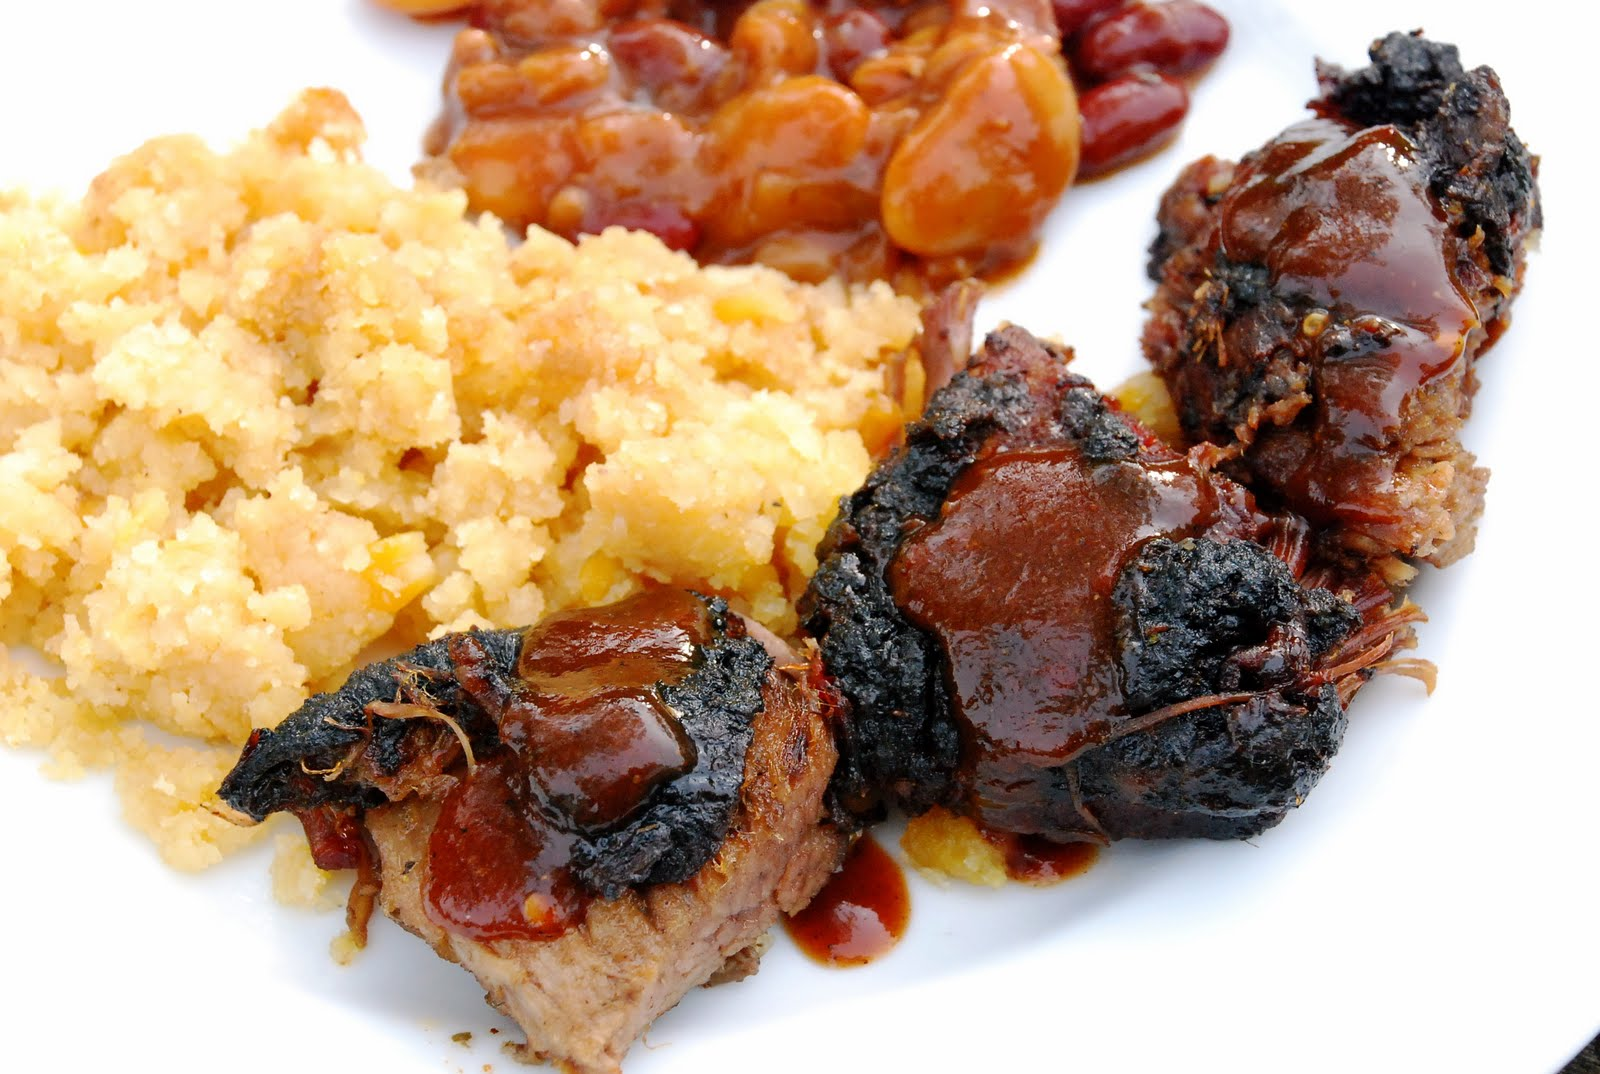 Burnt Ends And Other BBQ Standouts